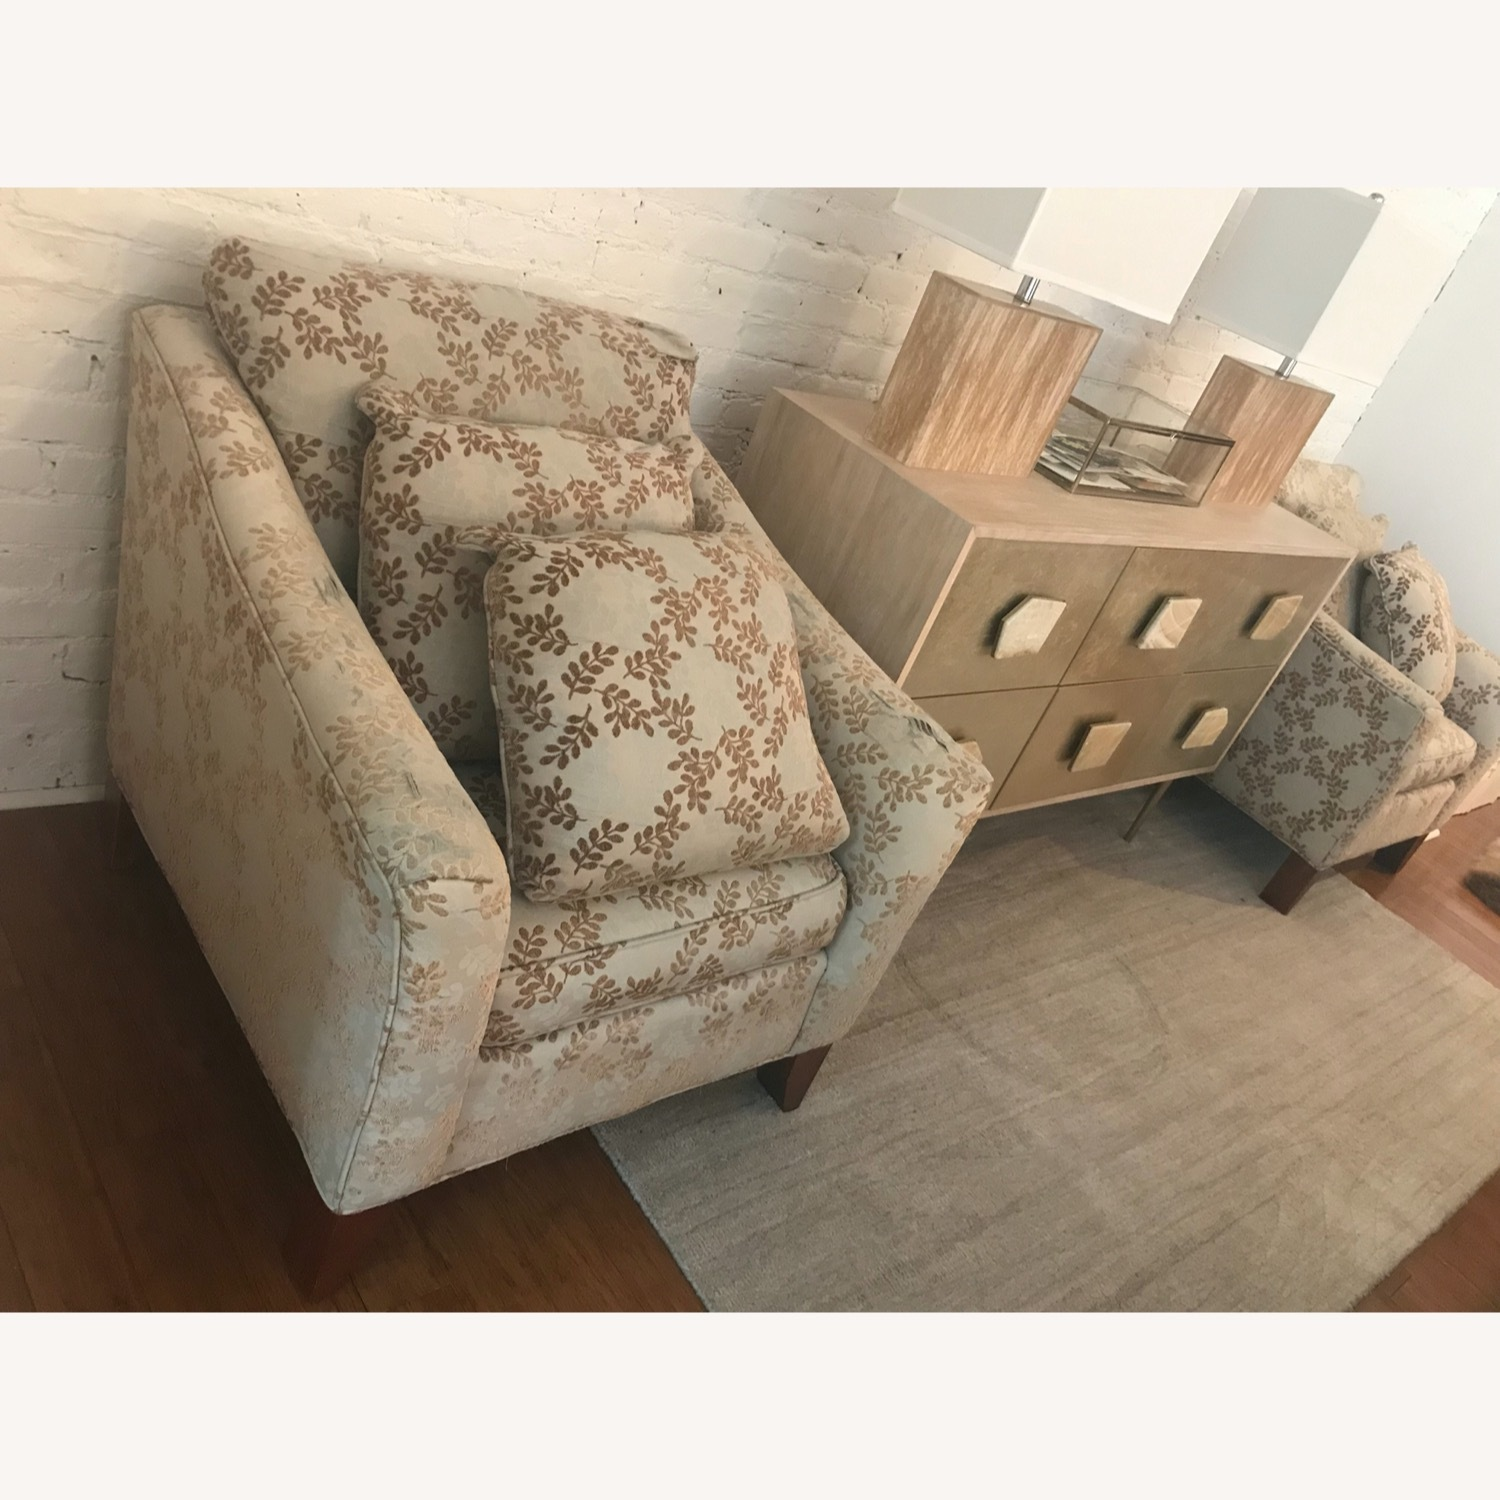 2 Ethan Allen Neutral Patterned Arm Chairs - image-2